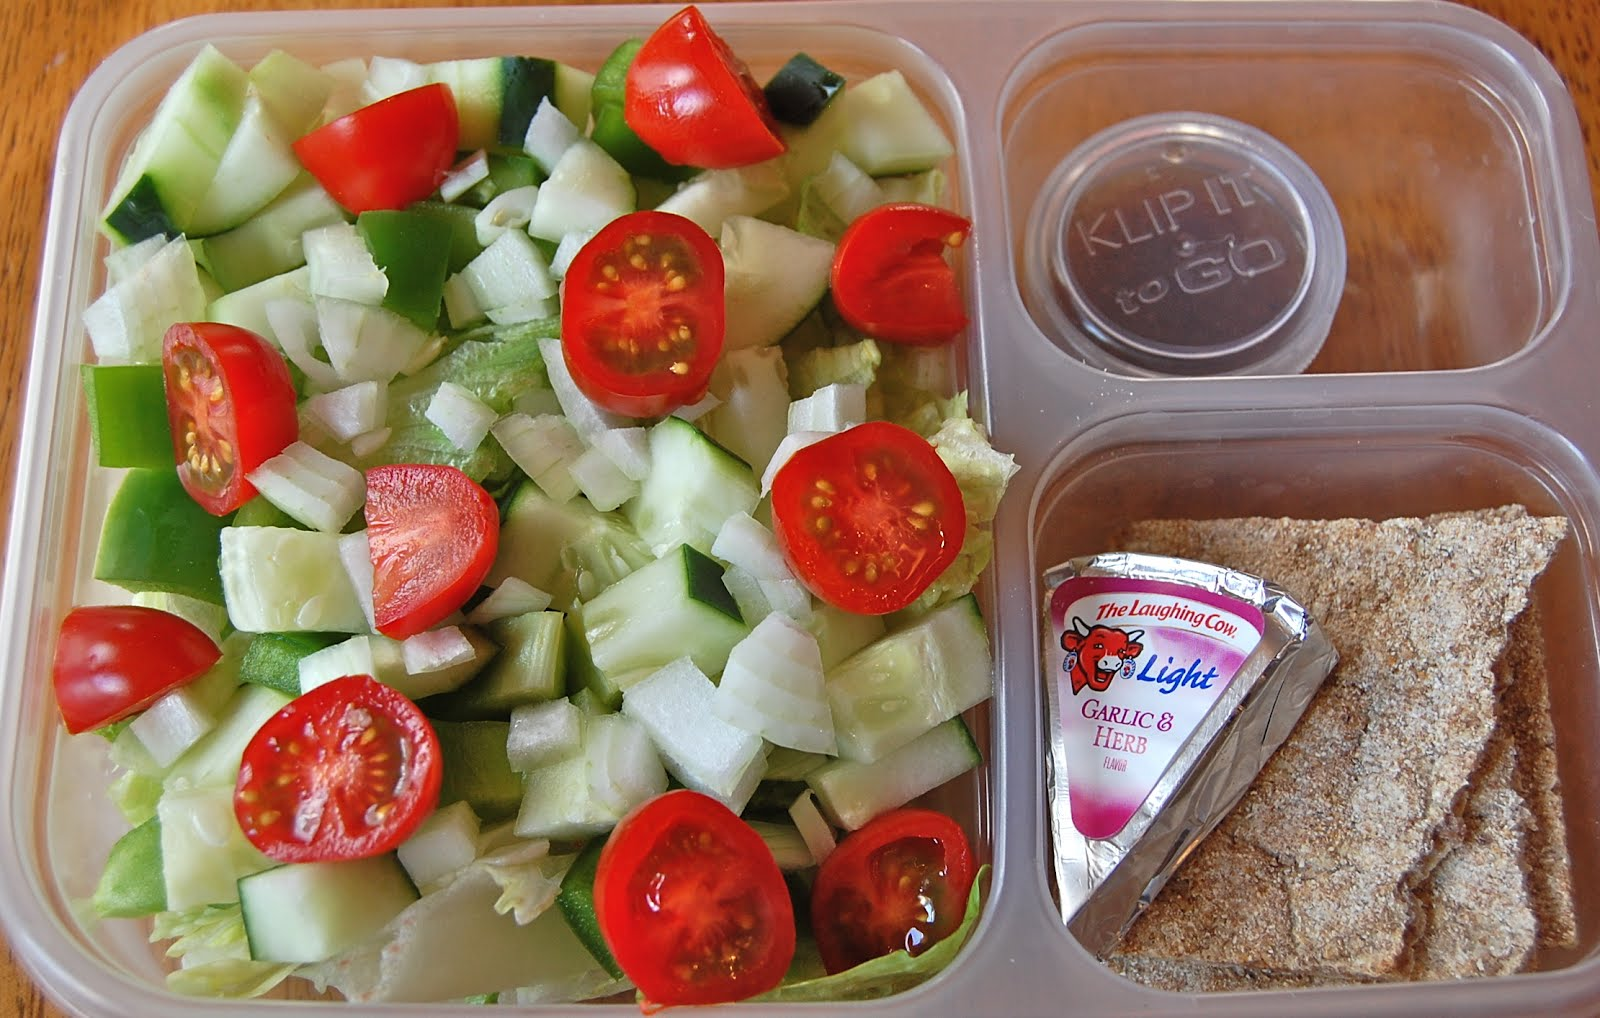 Salad (lettuce, Cucumber, Onion), Wasa Crisp, Laughing Cow Light Cheese  Spread, Balsamic Vingerette